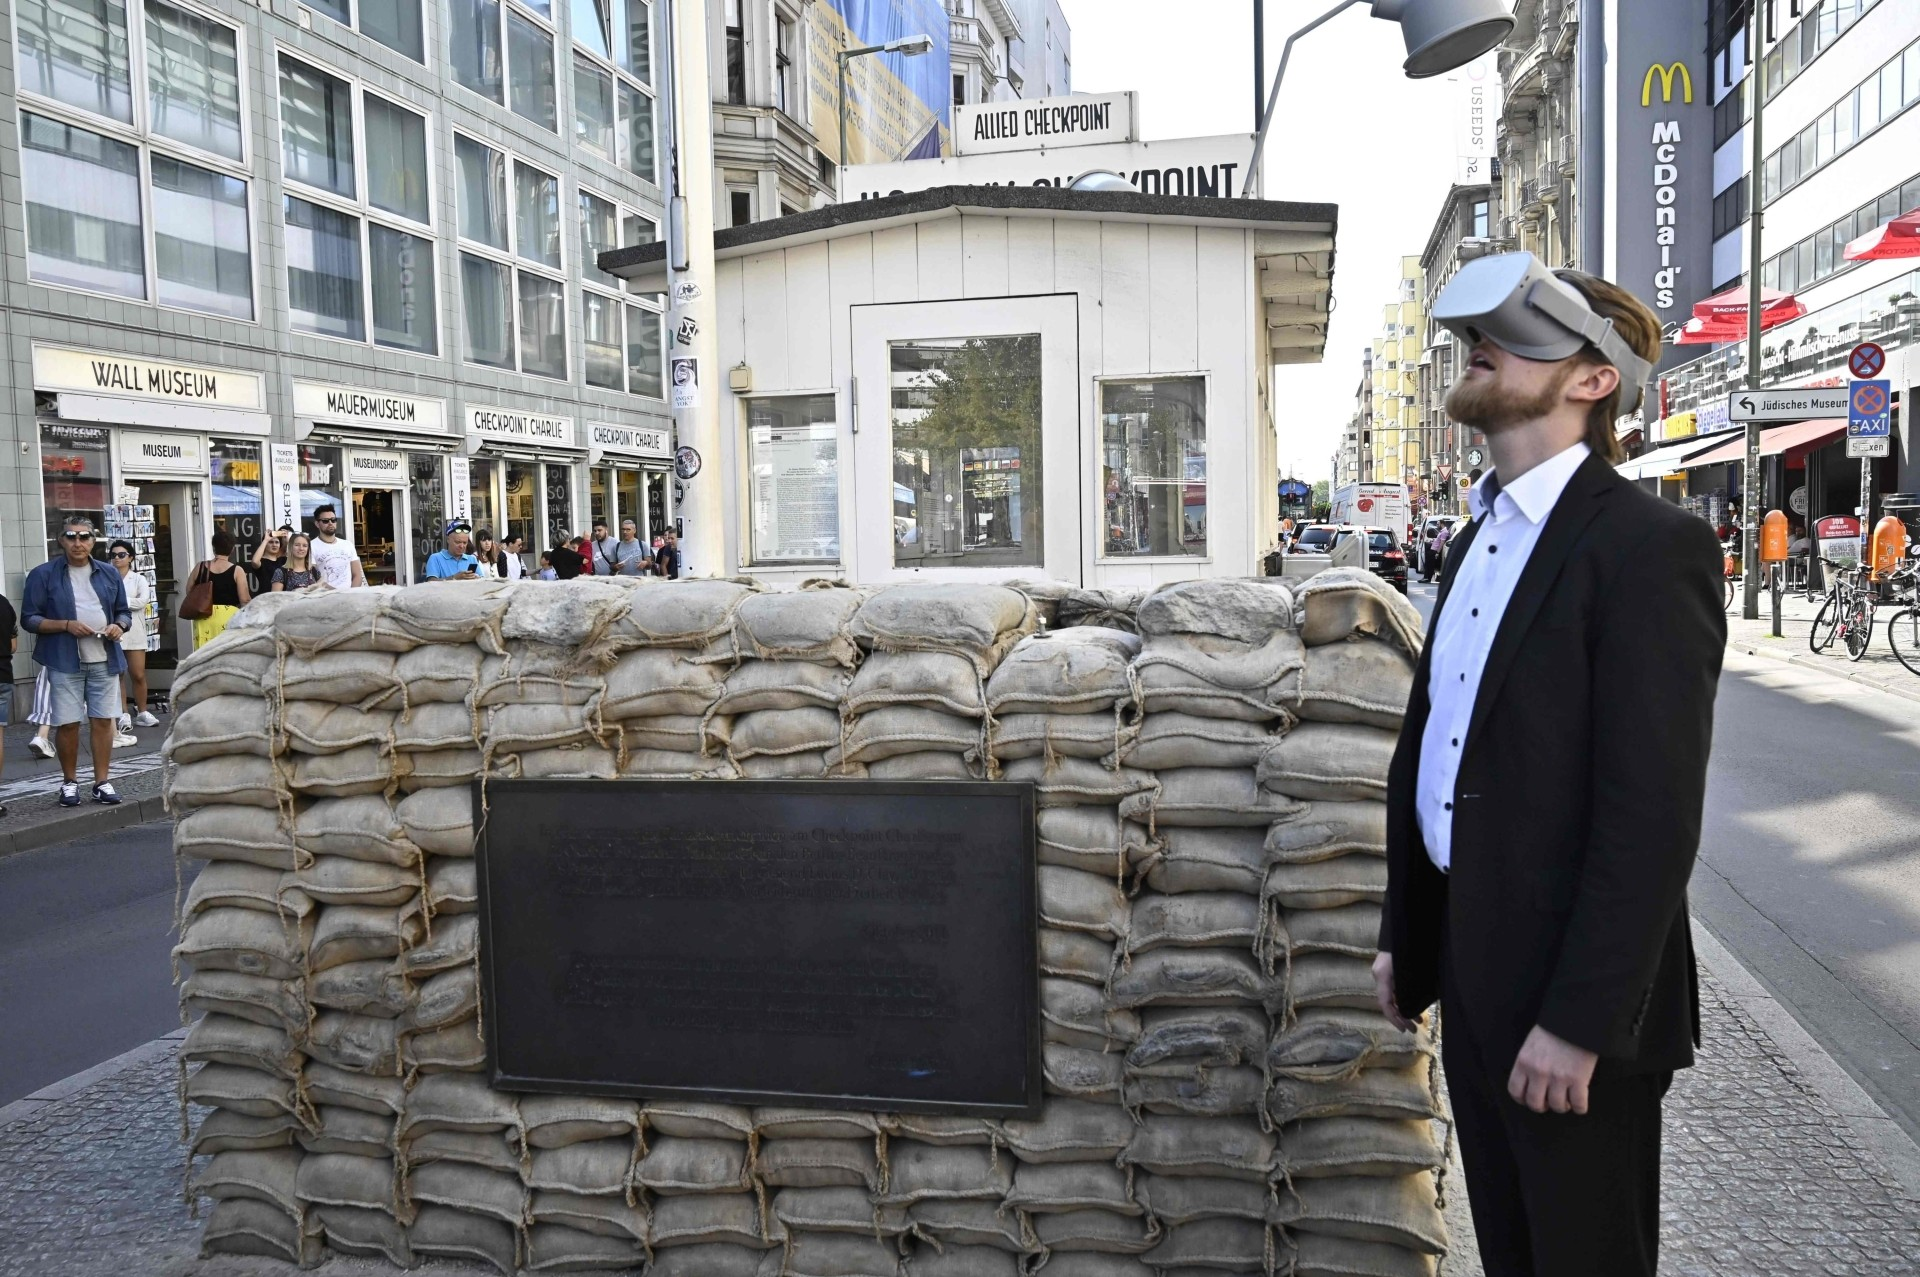 Rothe posing next to Checkpoint Charlie in Berlin.